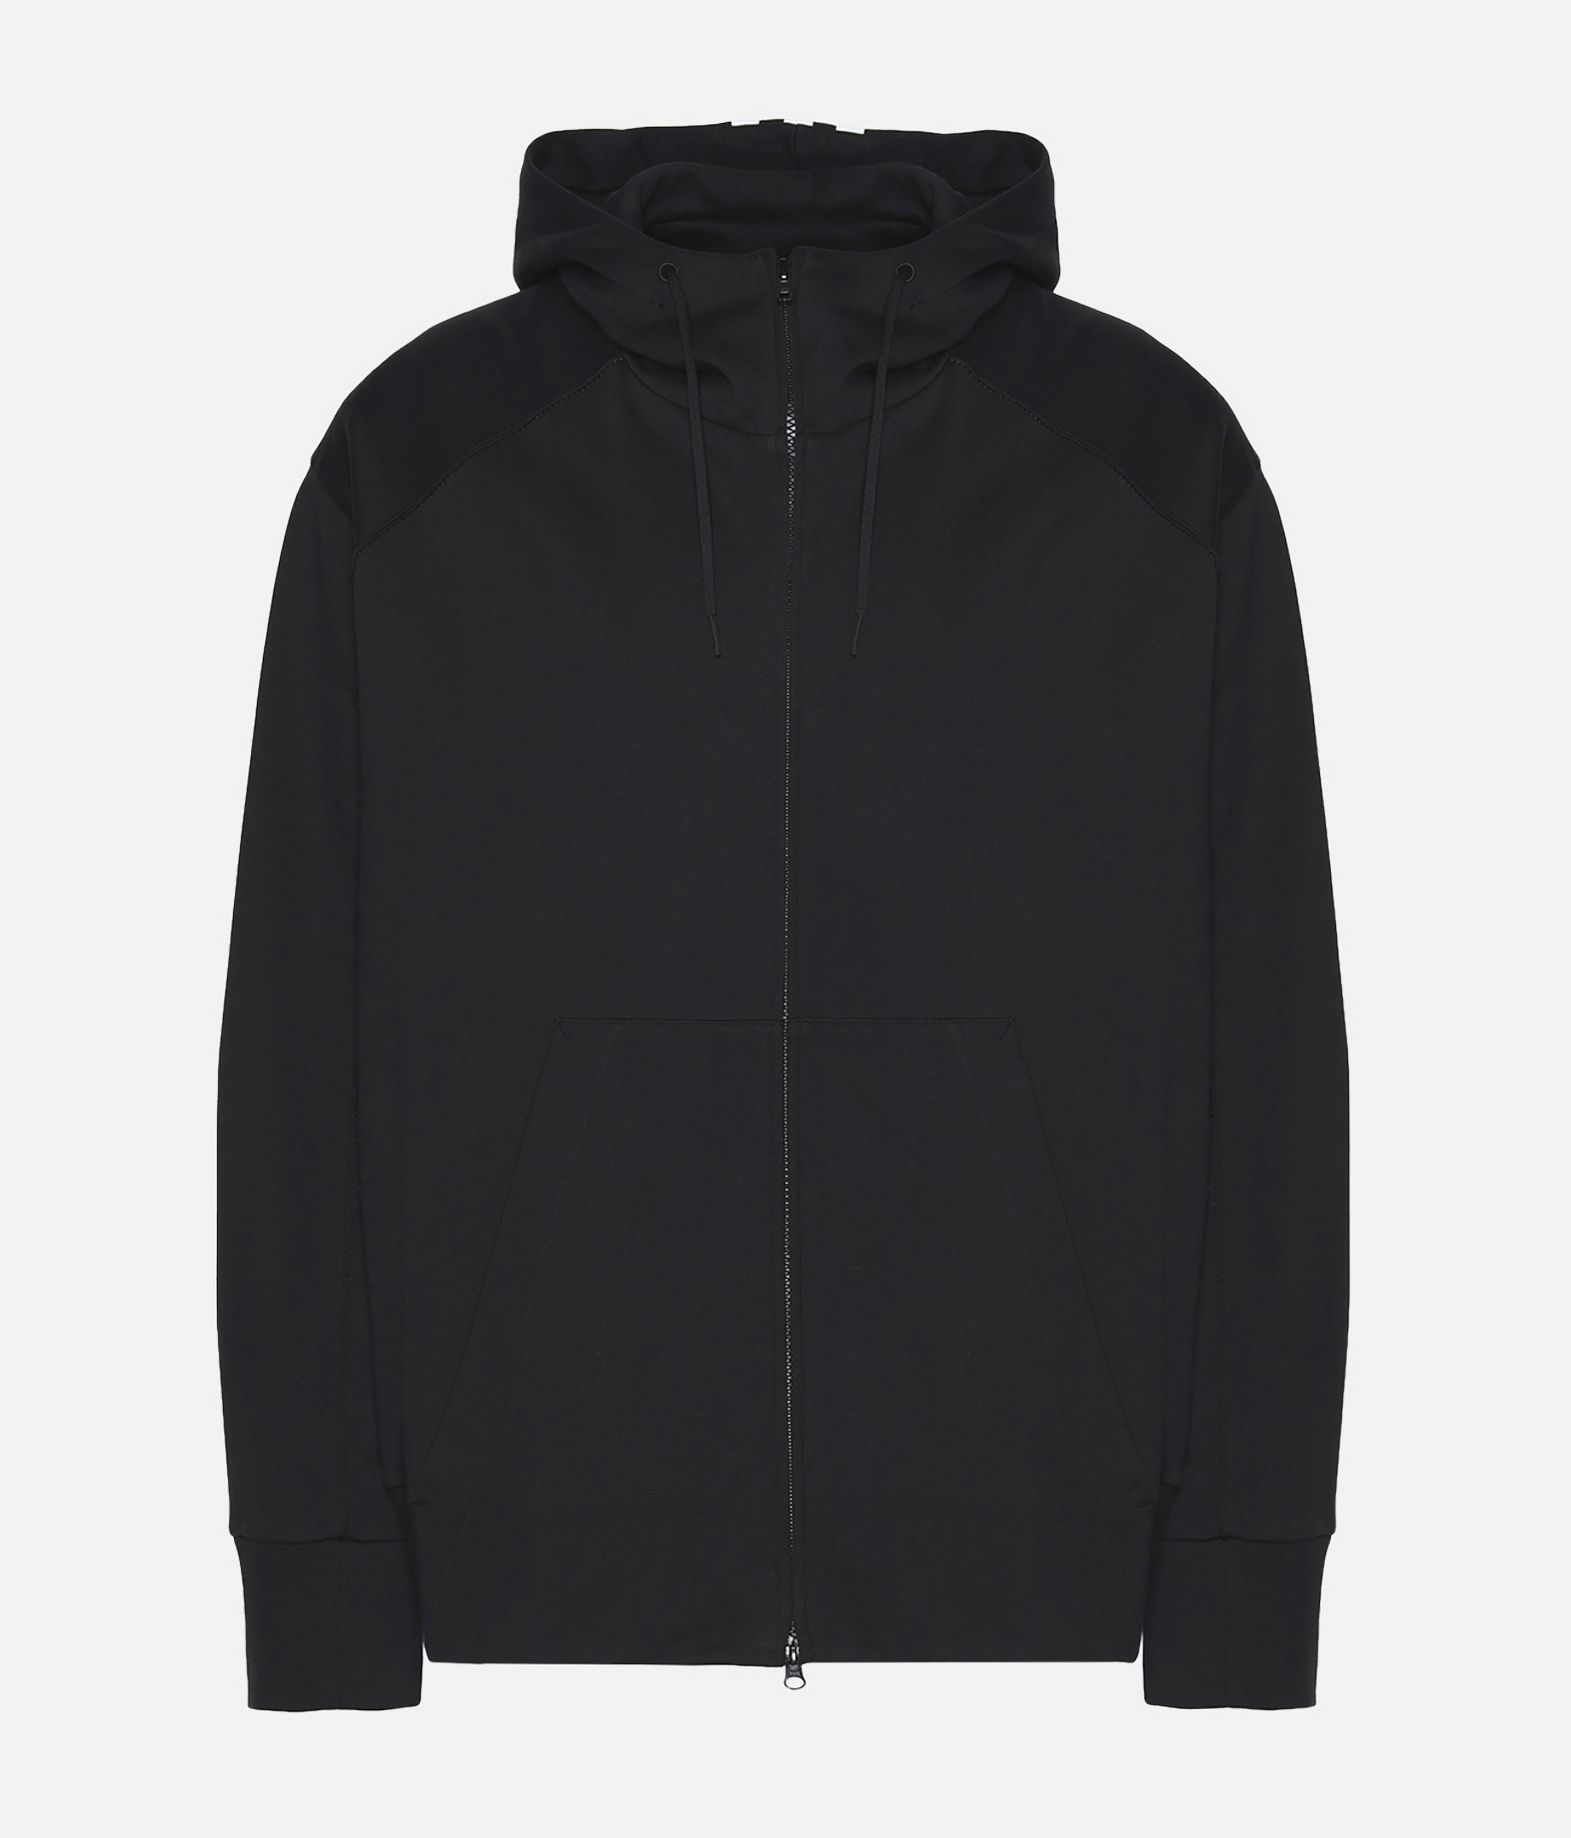 Y-3 Y-3 Signature Graphic Hoodie Hooded sweatshirt Man f